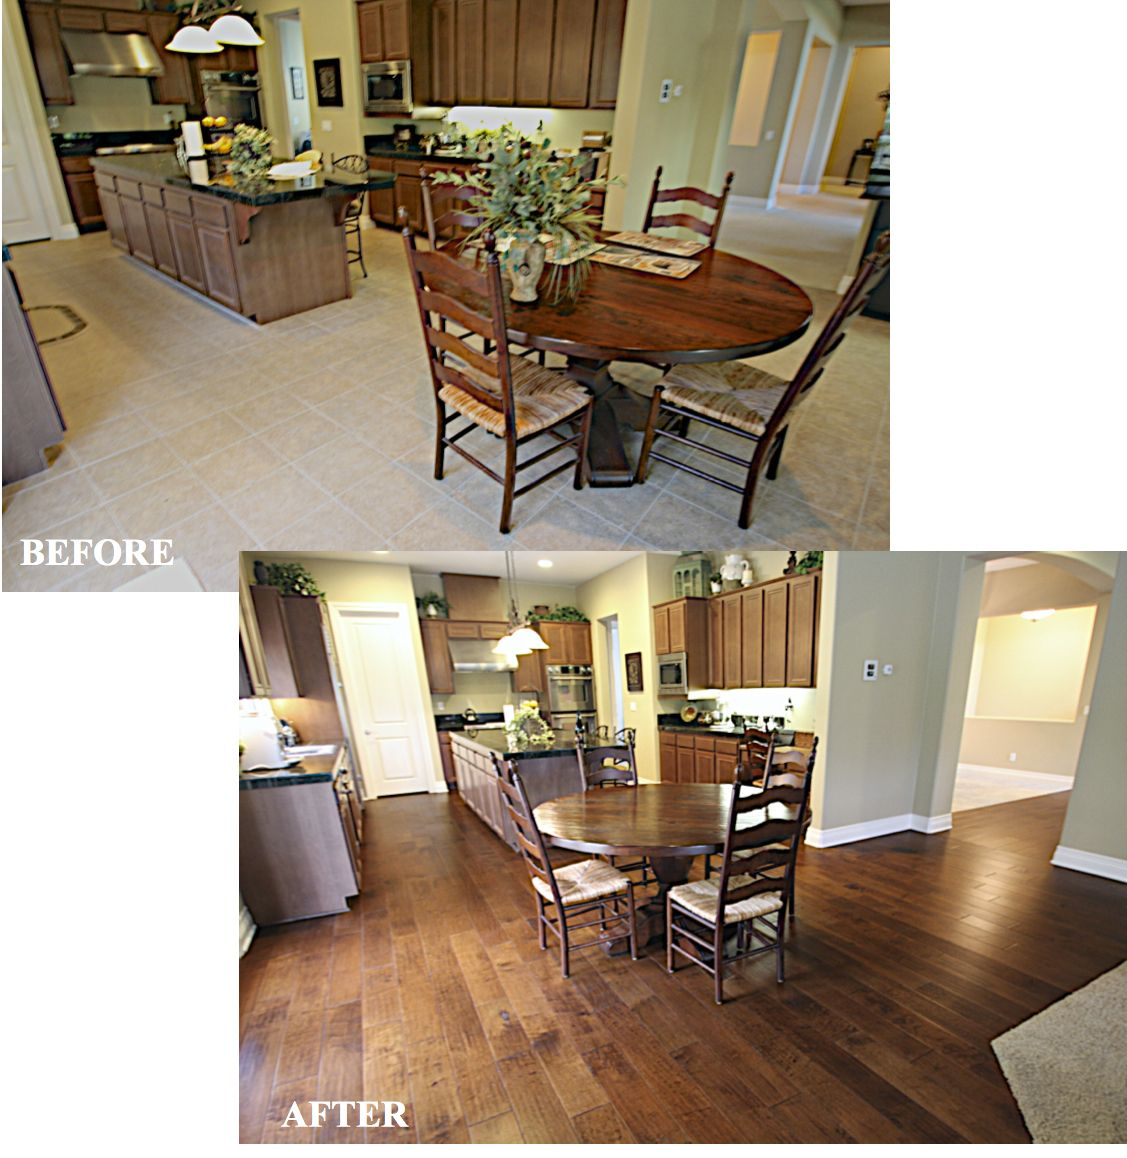 People Cleaning Kitchen: West Coast Flooring Can Completely Change Your Kitchen